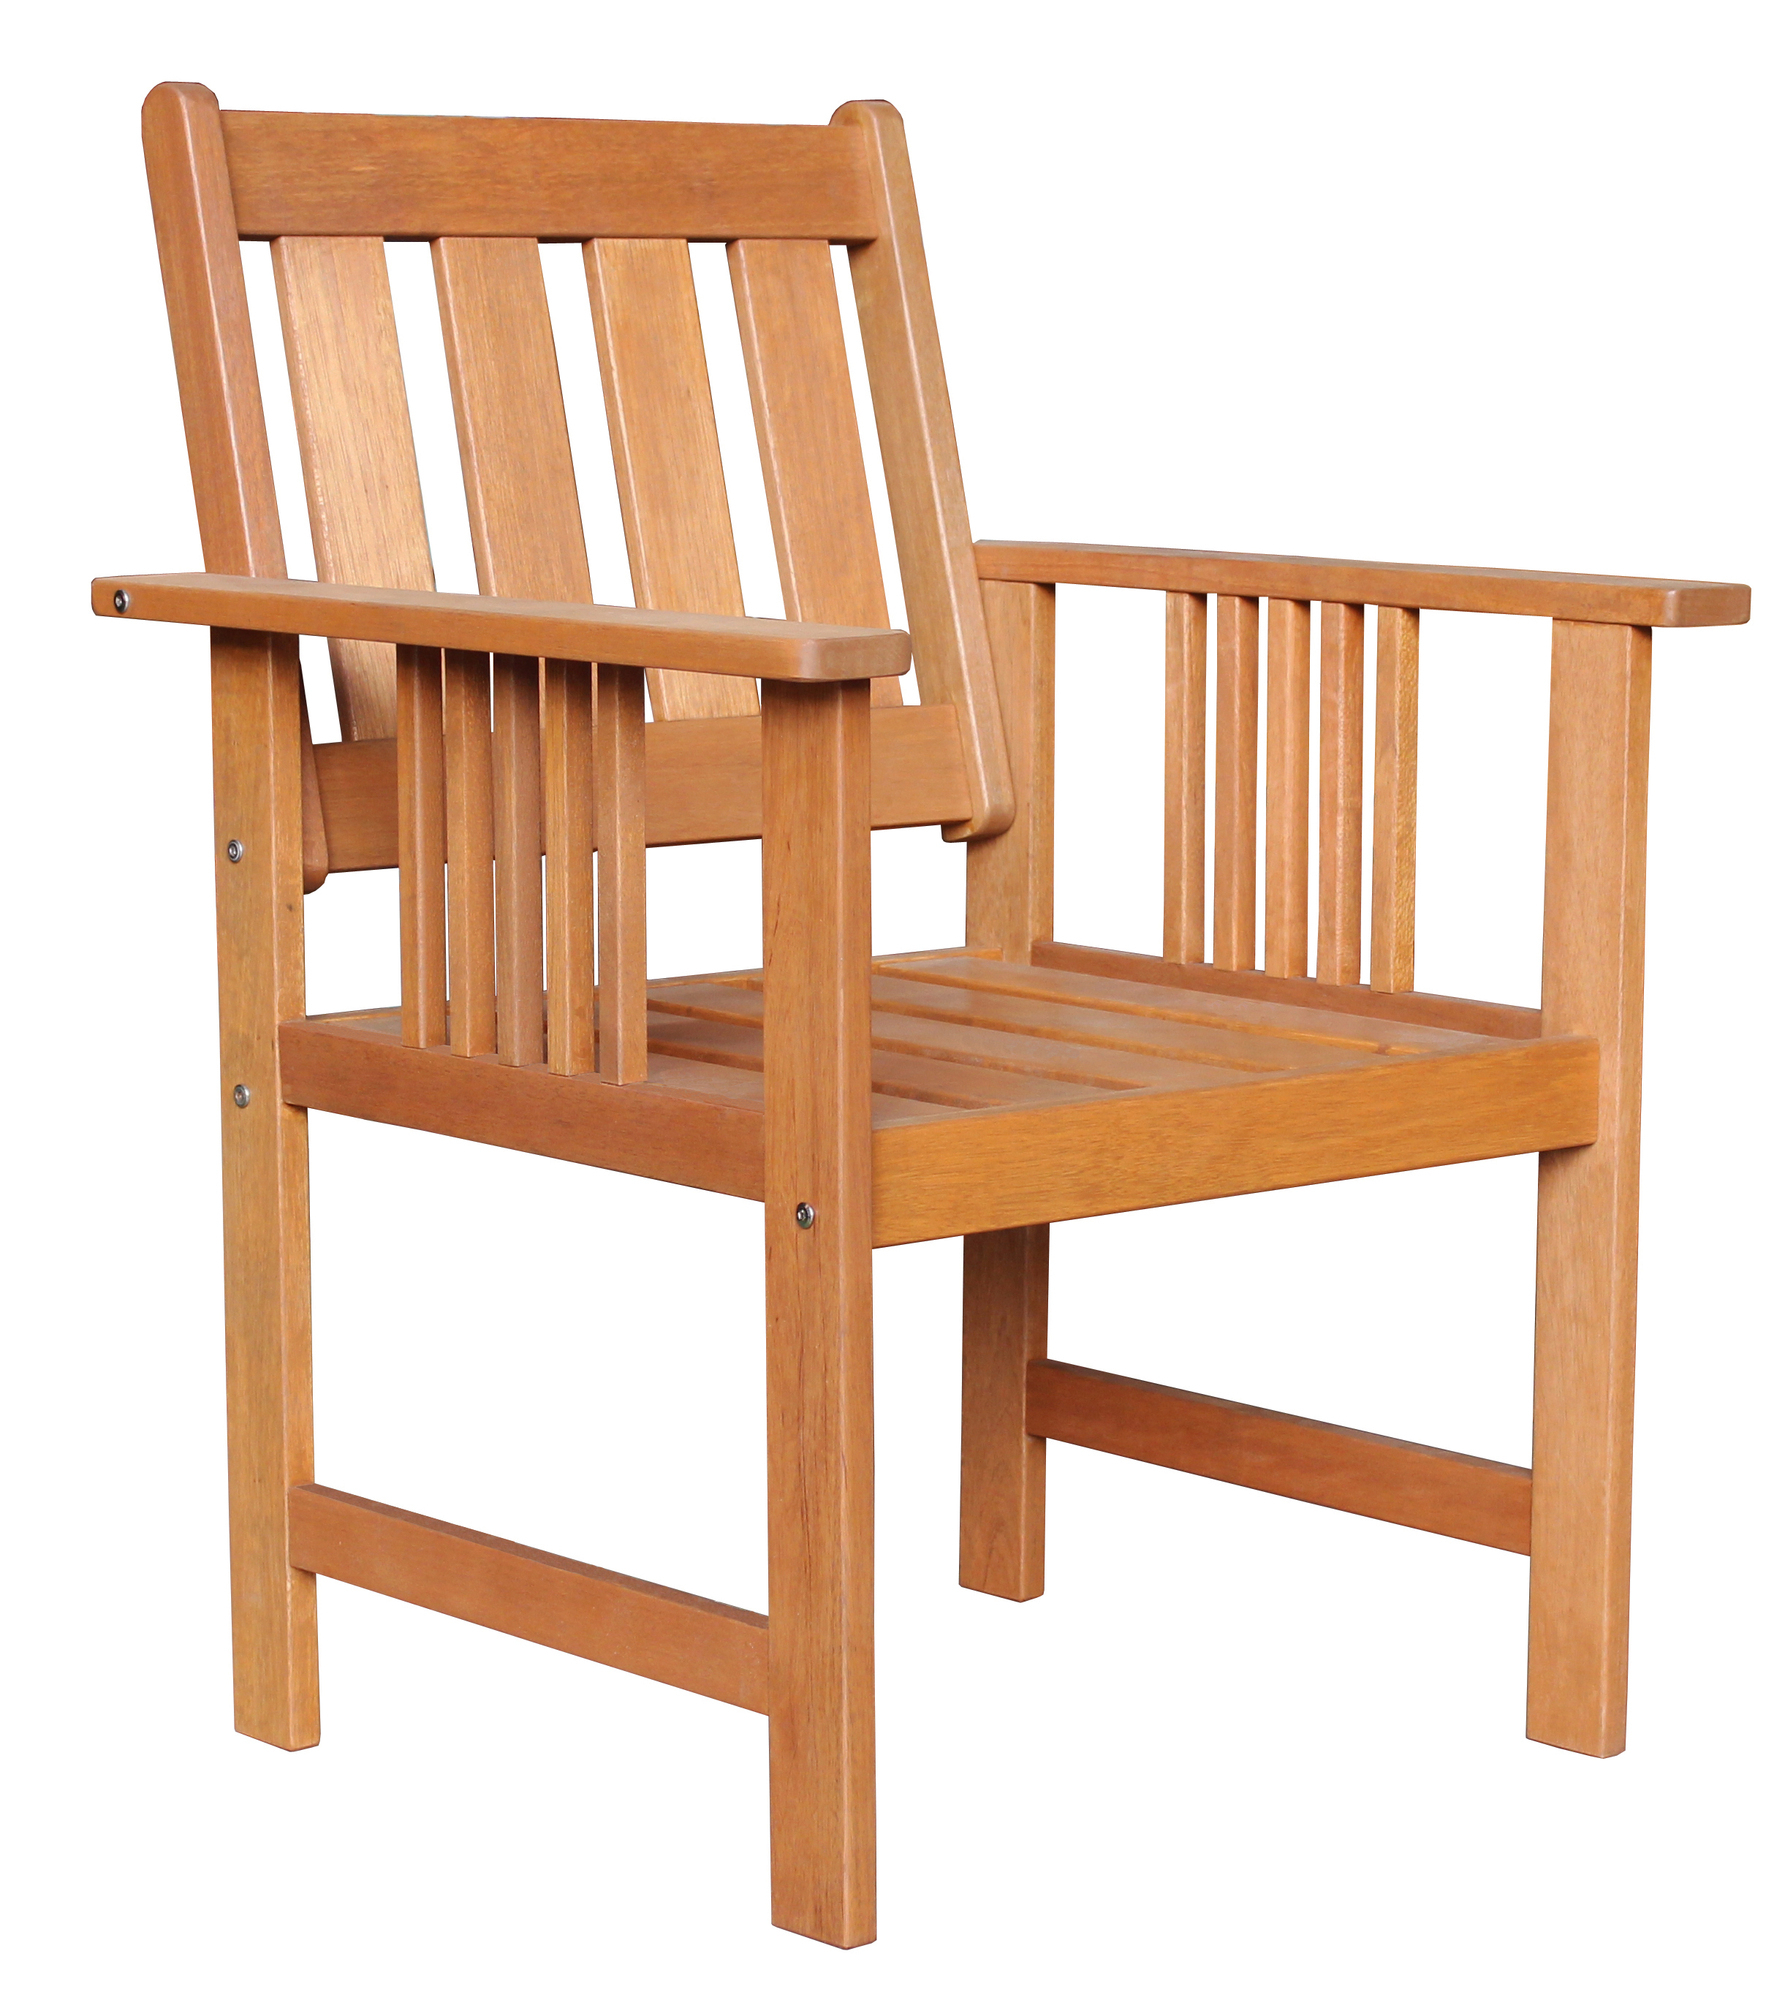 Natural Avoca Wood Outdoor Armchair Pertaining To Avoca Wood Garden Benches (View 5 of 25)